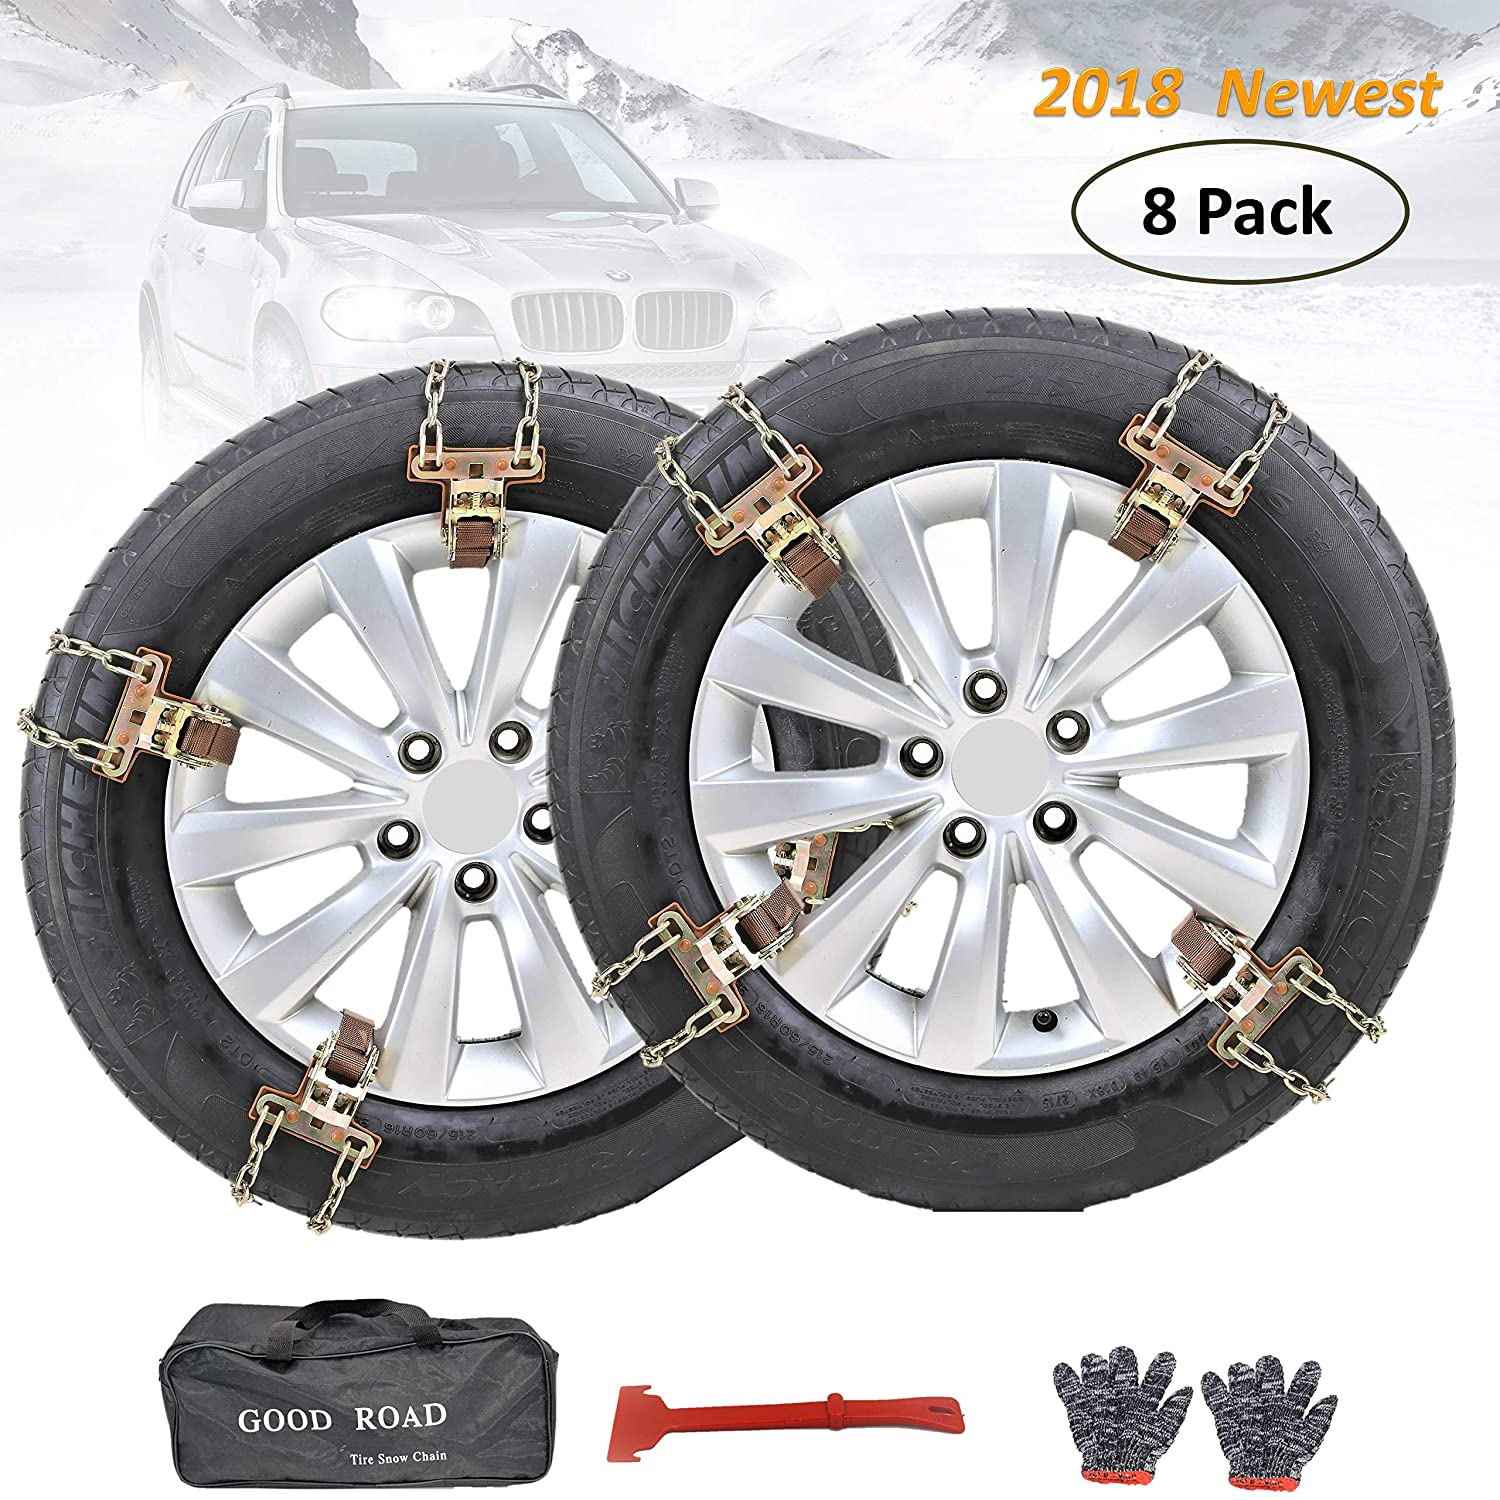 Fun-Driving 8 Pack Tire Chains,Snow Chains,Heavy-Duty,Durable and Adjustable,for SUV,Truck,RV, ATV, Tire Width 205-275mm/8-10.8' Tire Width 205-275mm/8-10.8